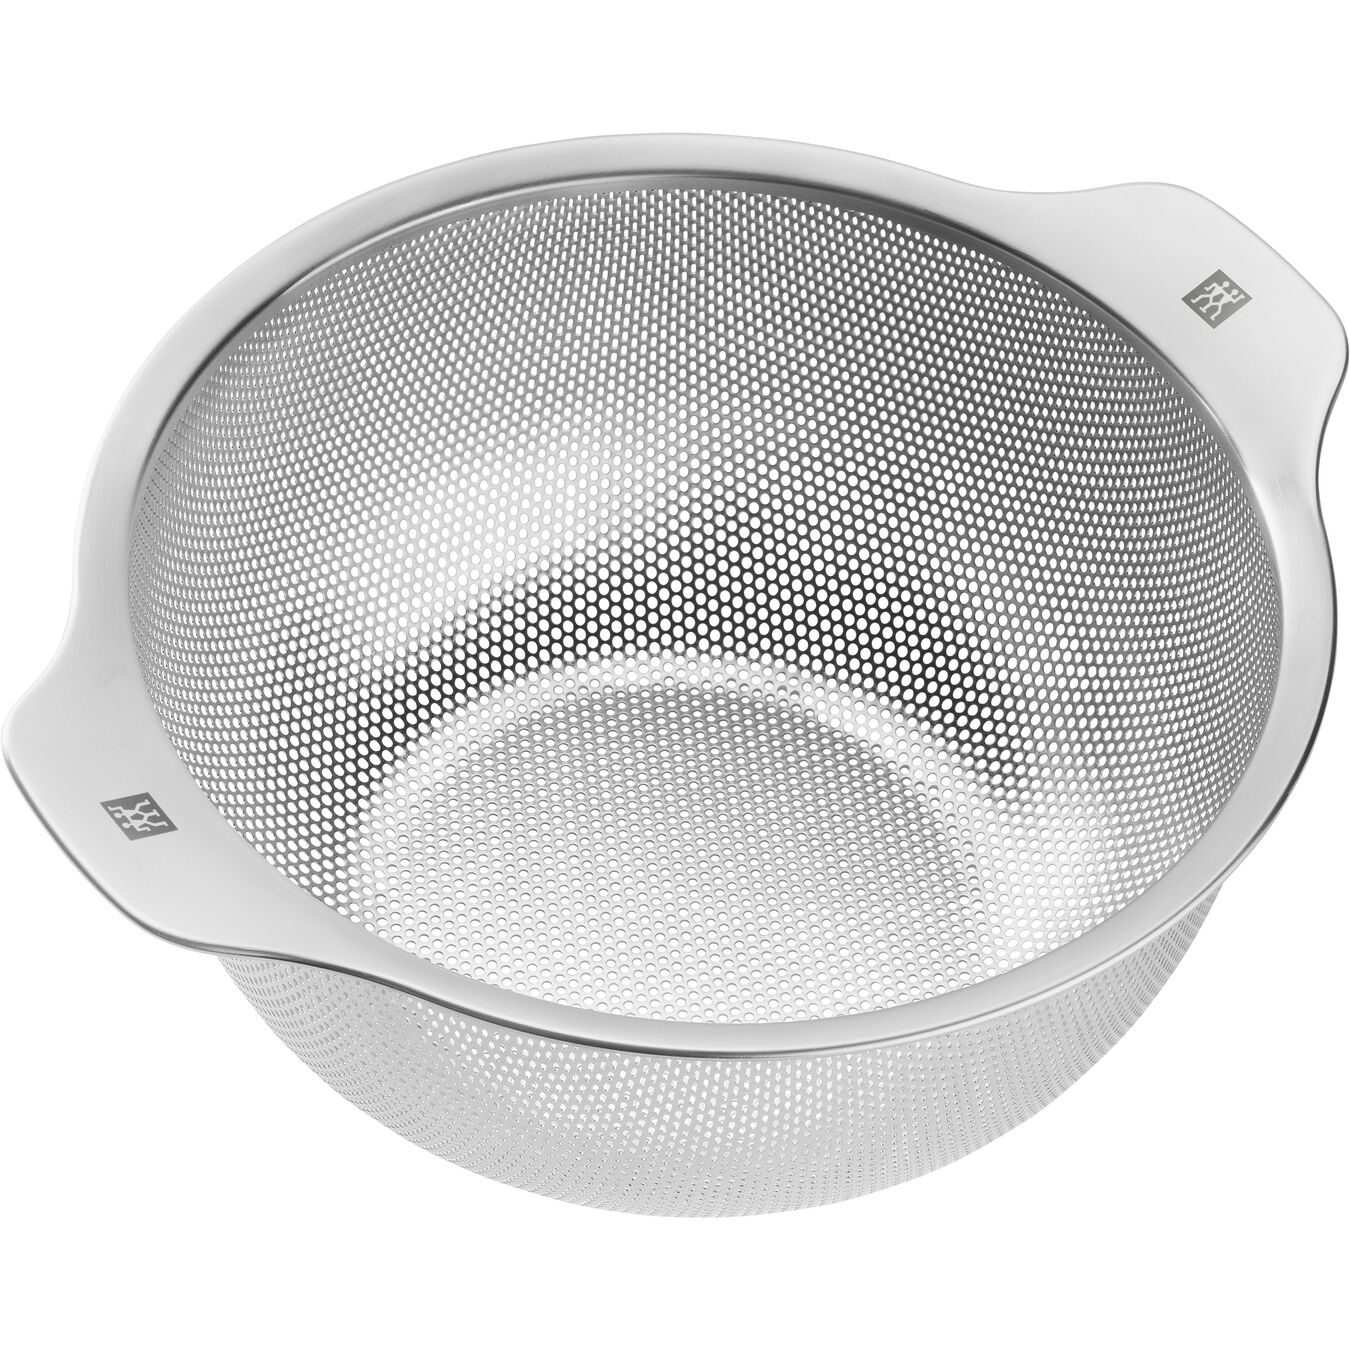 10.5-inch Colander, 18/10 Stainless Steel ,,large 2